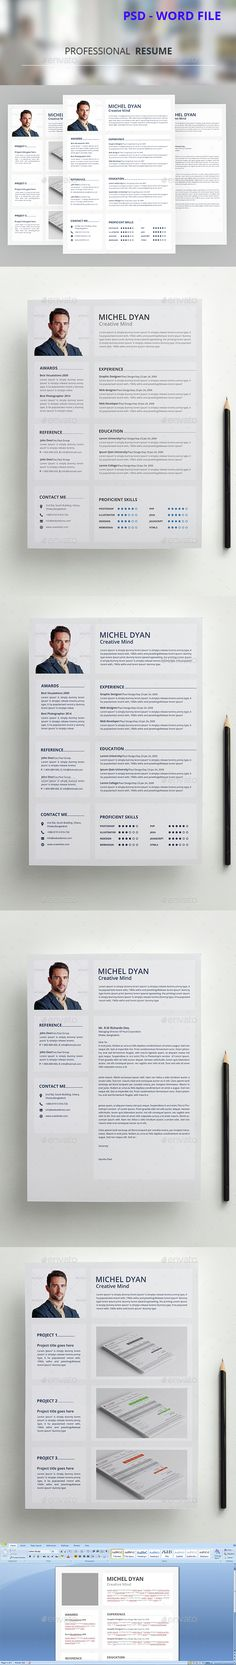 Professional Resume Template PSD. Download here: http://graphicriver.net/item/professional-resume-template-3/14576132?ref=ksioks